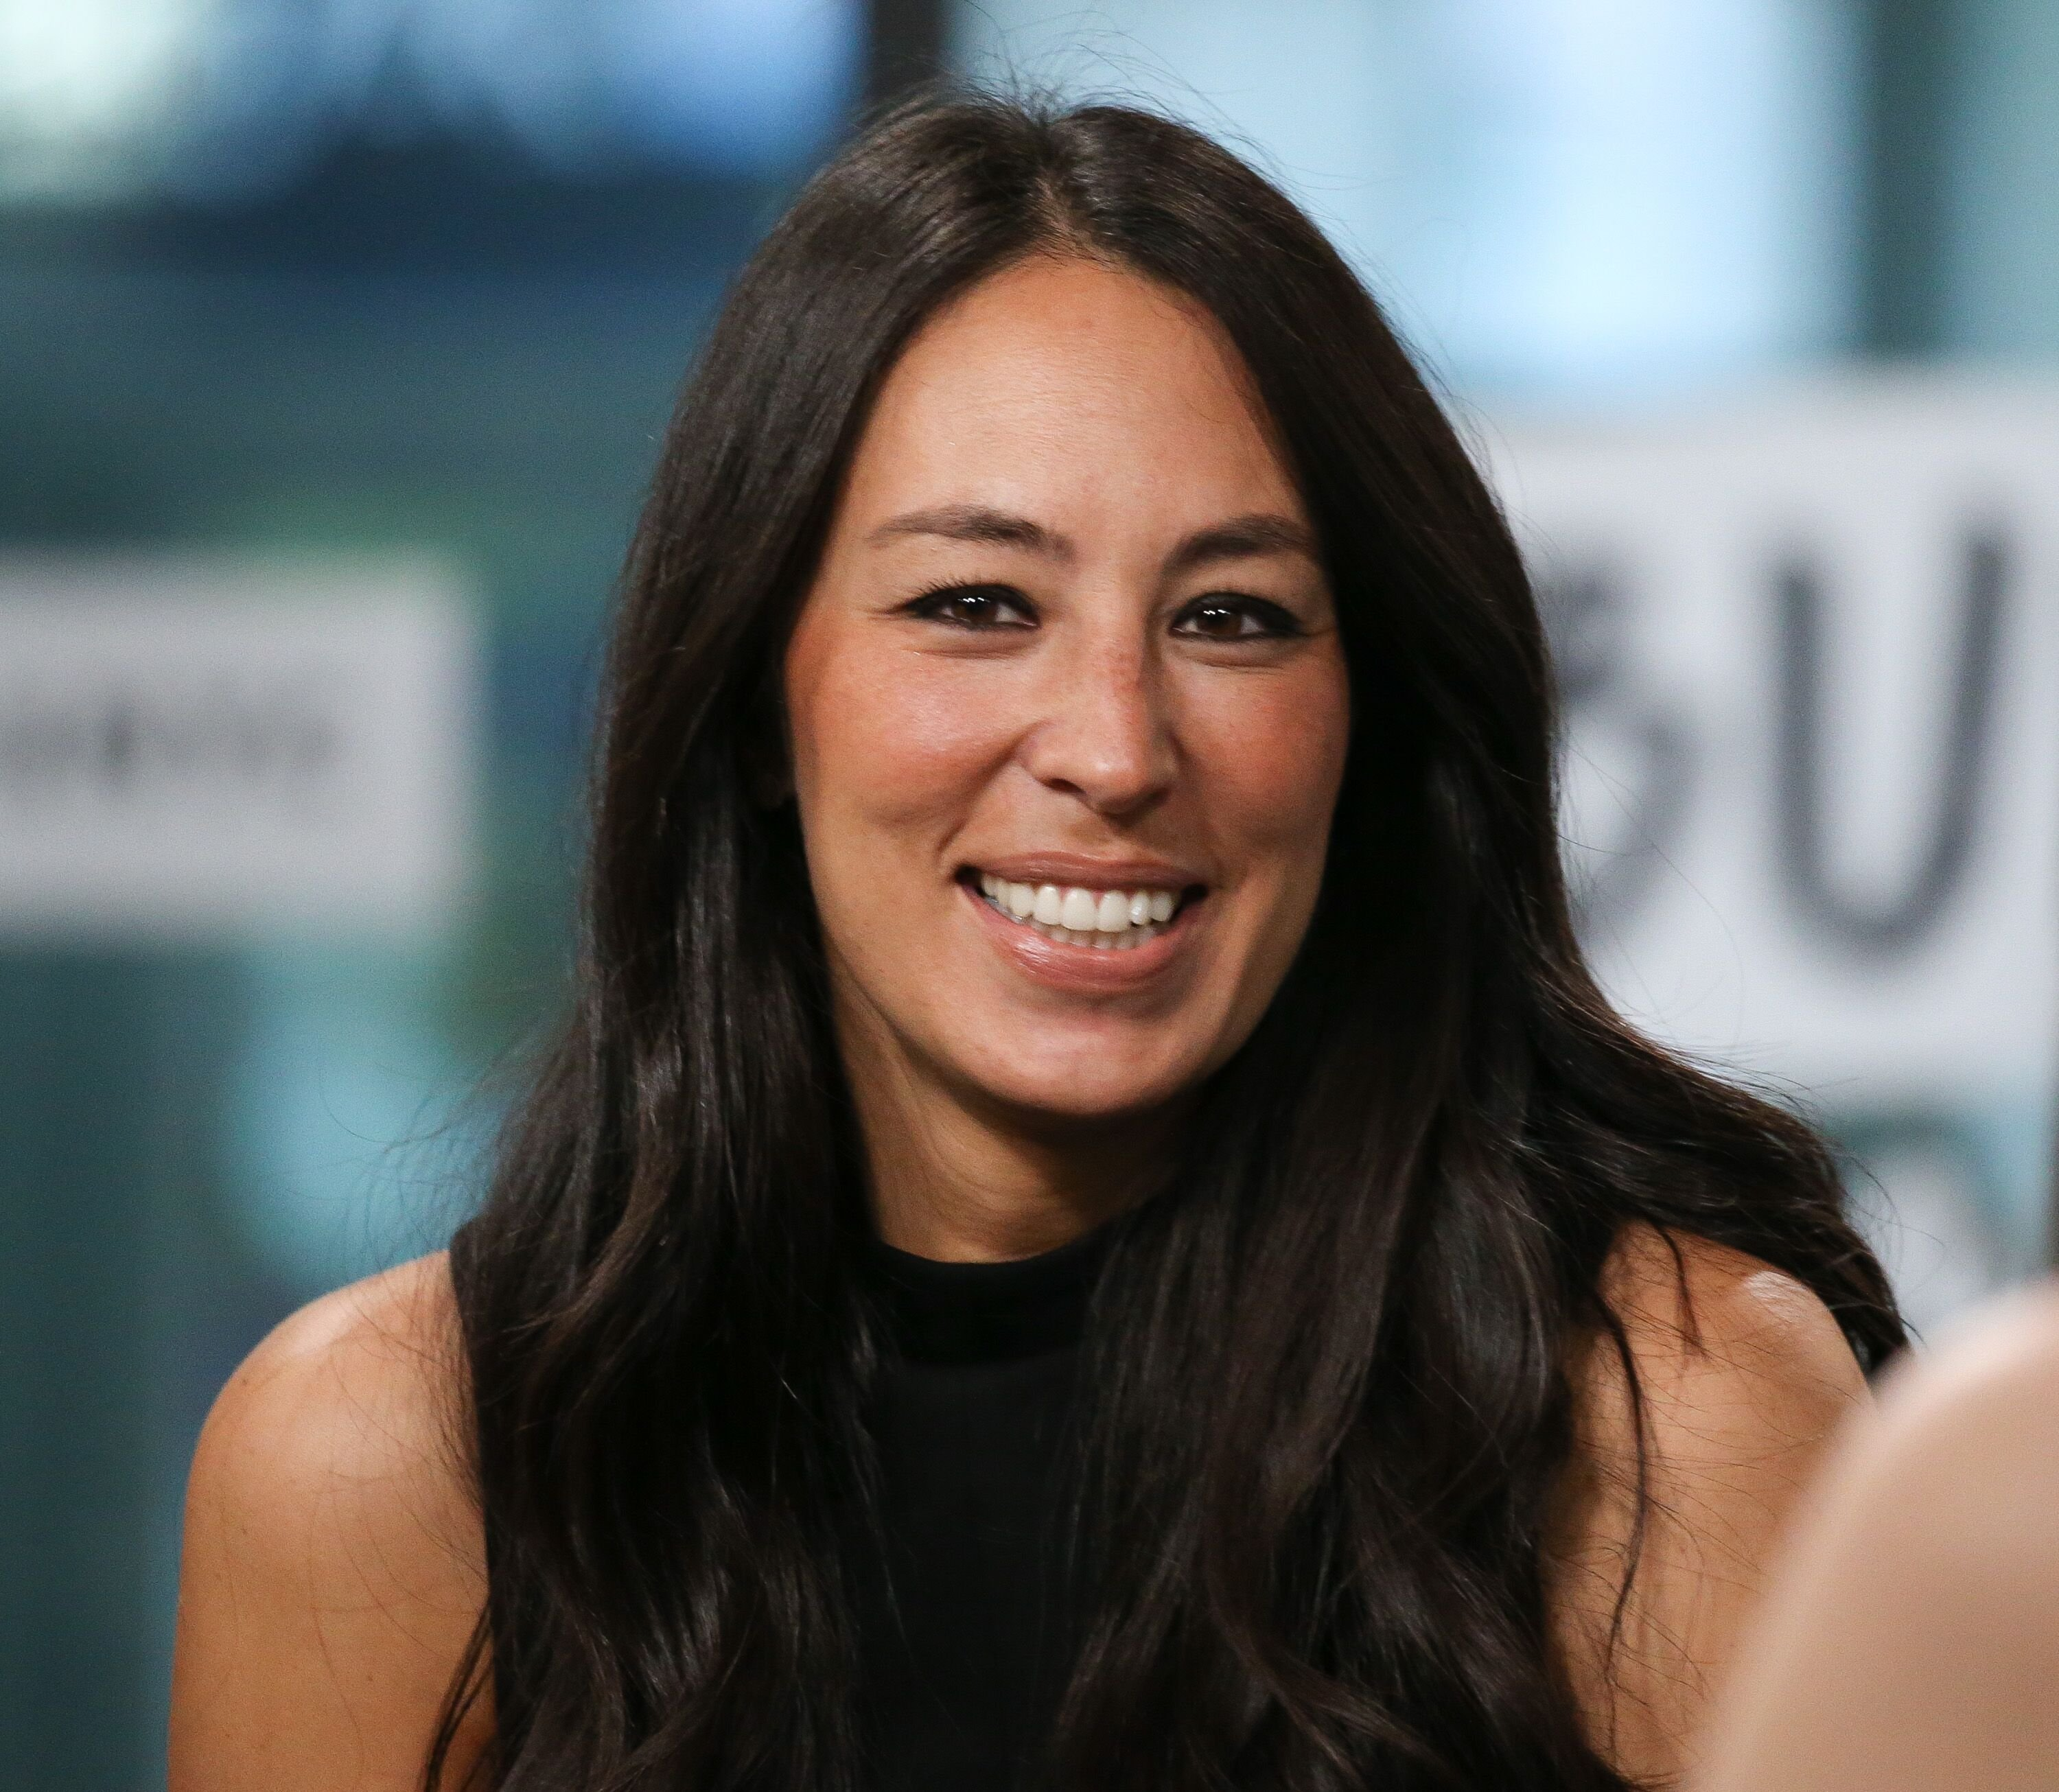 Joanna Gaines at Build Studio on October 18, 2017 in New York City. | Photo: Getty Images